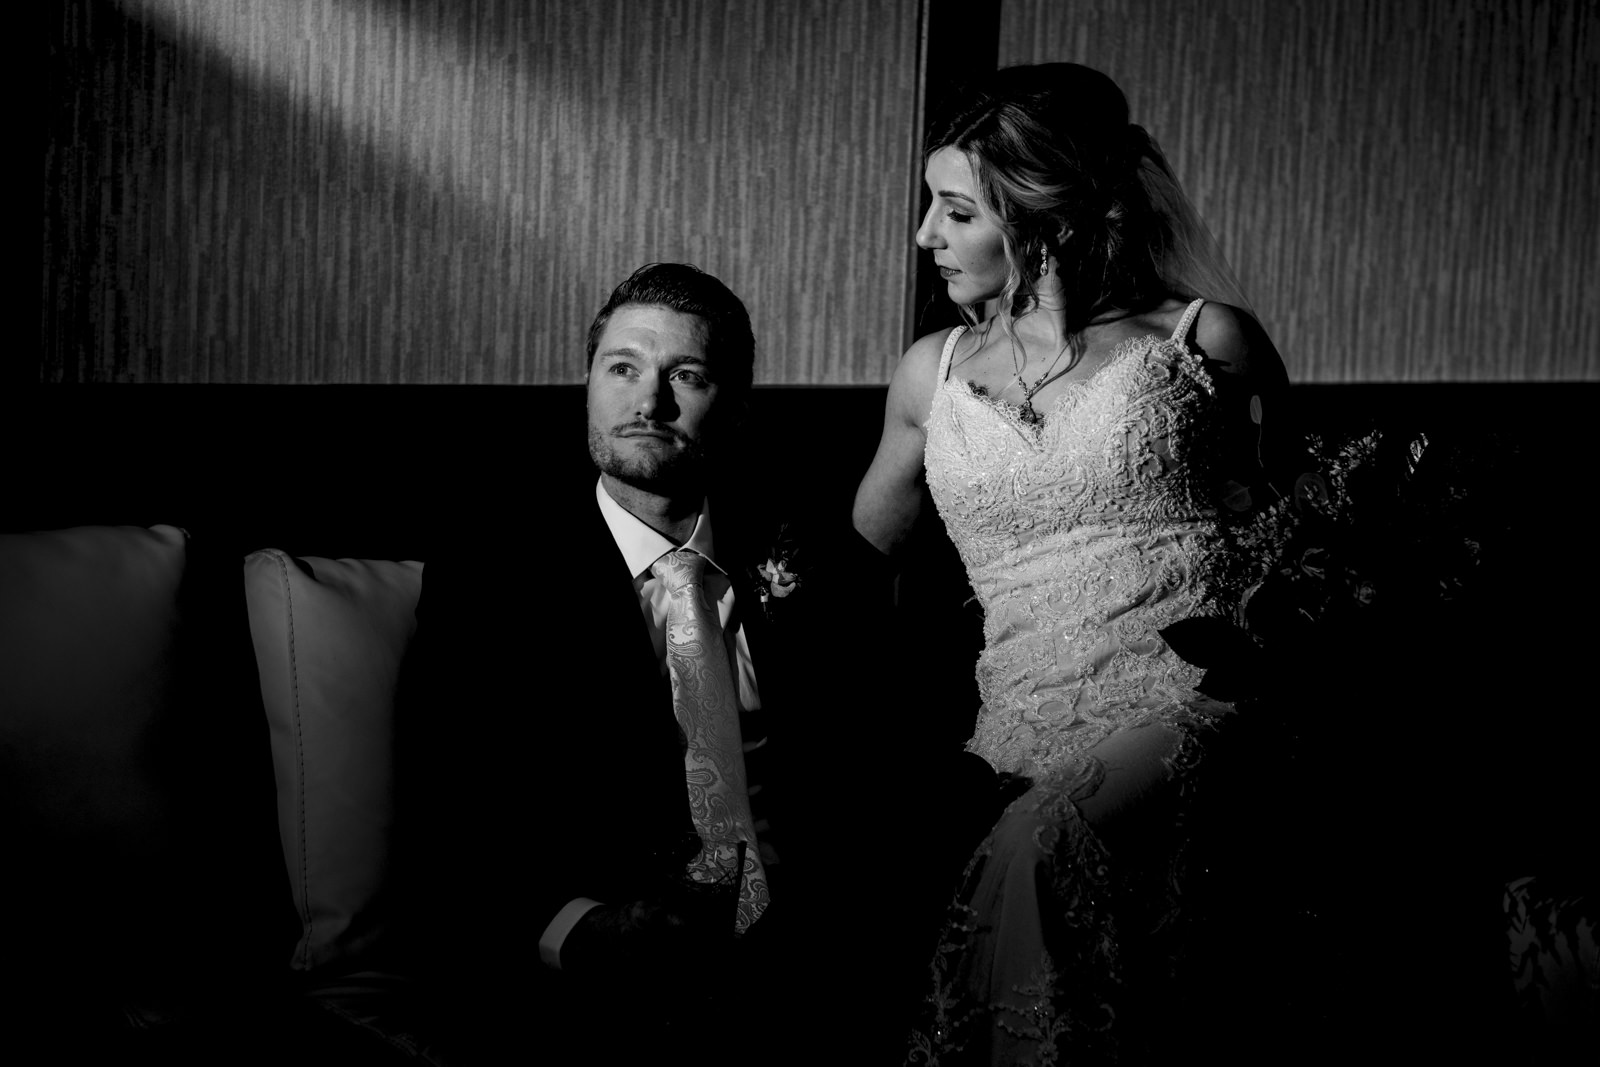 Bride and groom portrait at the Renaissance Hotel in Downtown Toledo.